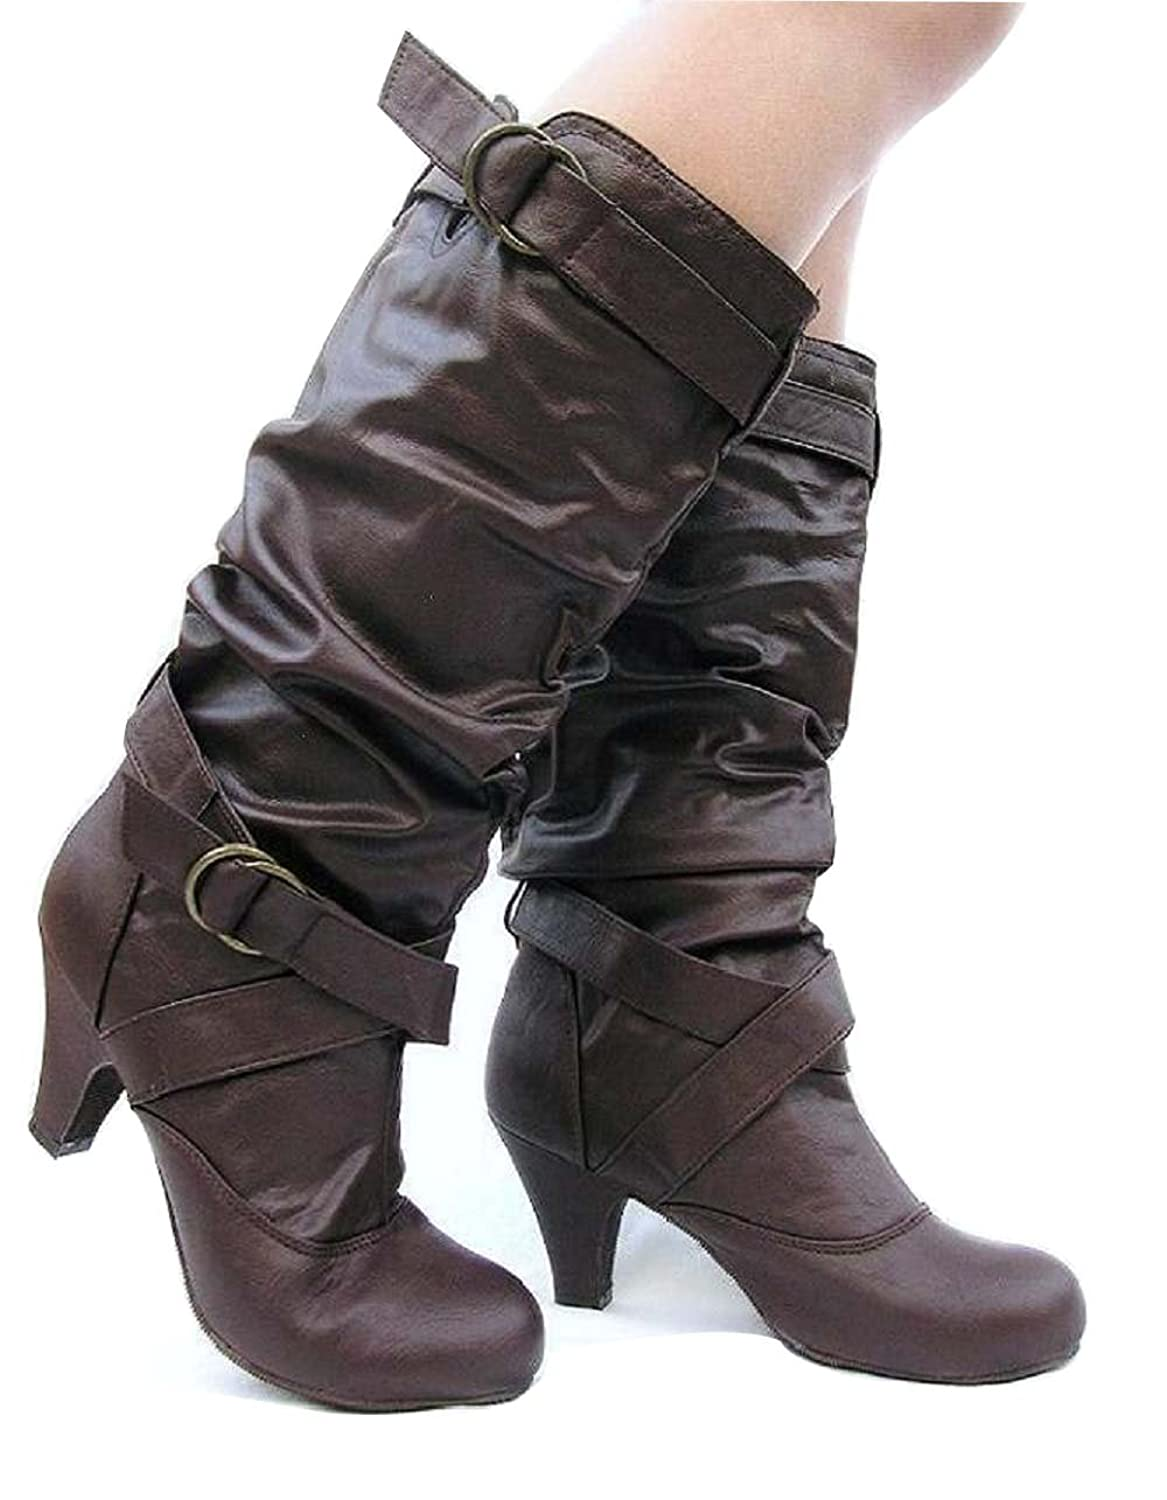 Codify Floyee-S Women's Mid Calf Slouch Buckle Decorative Riding Boots, Brown Leatherette, 10 B (M) US